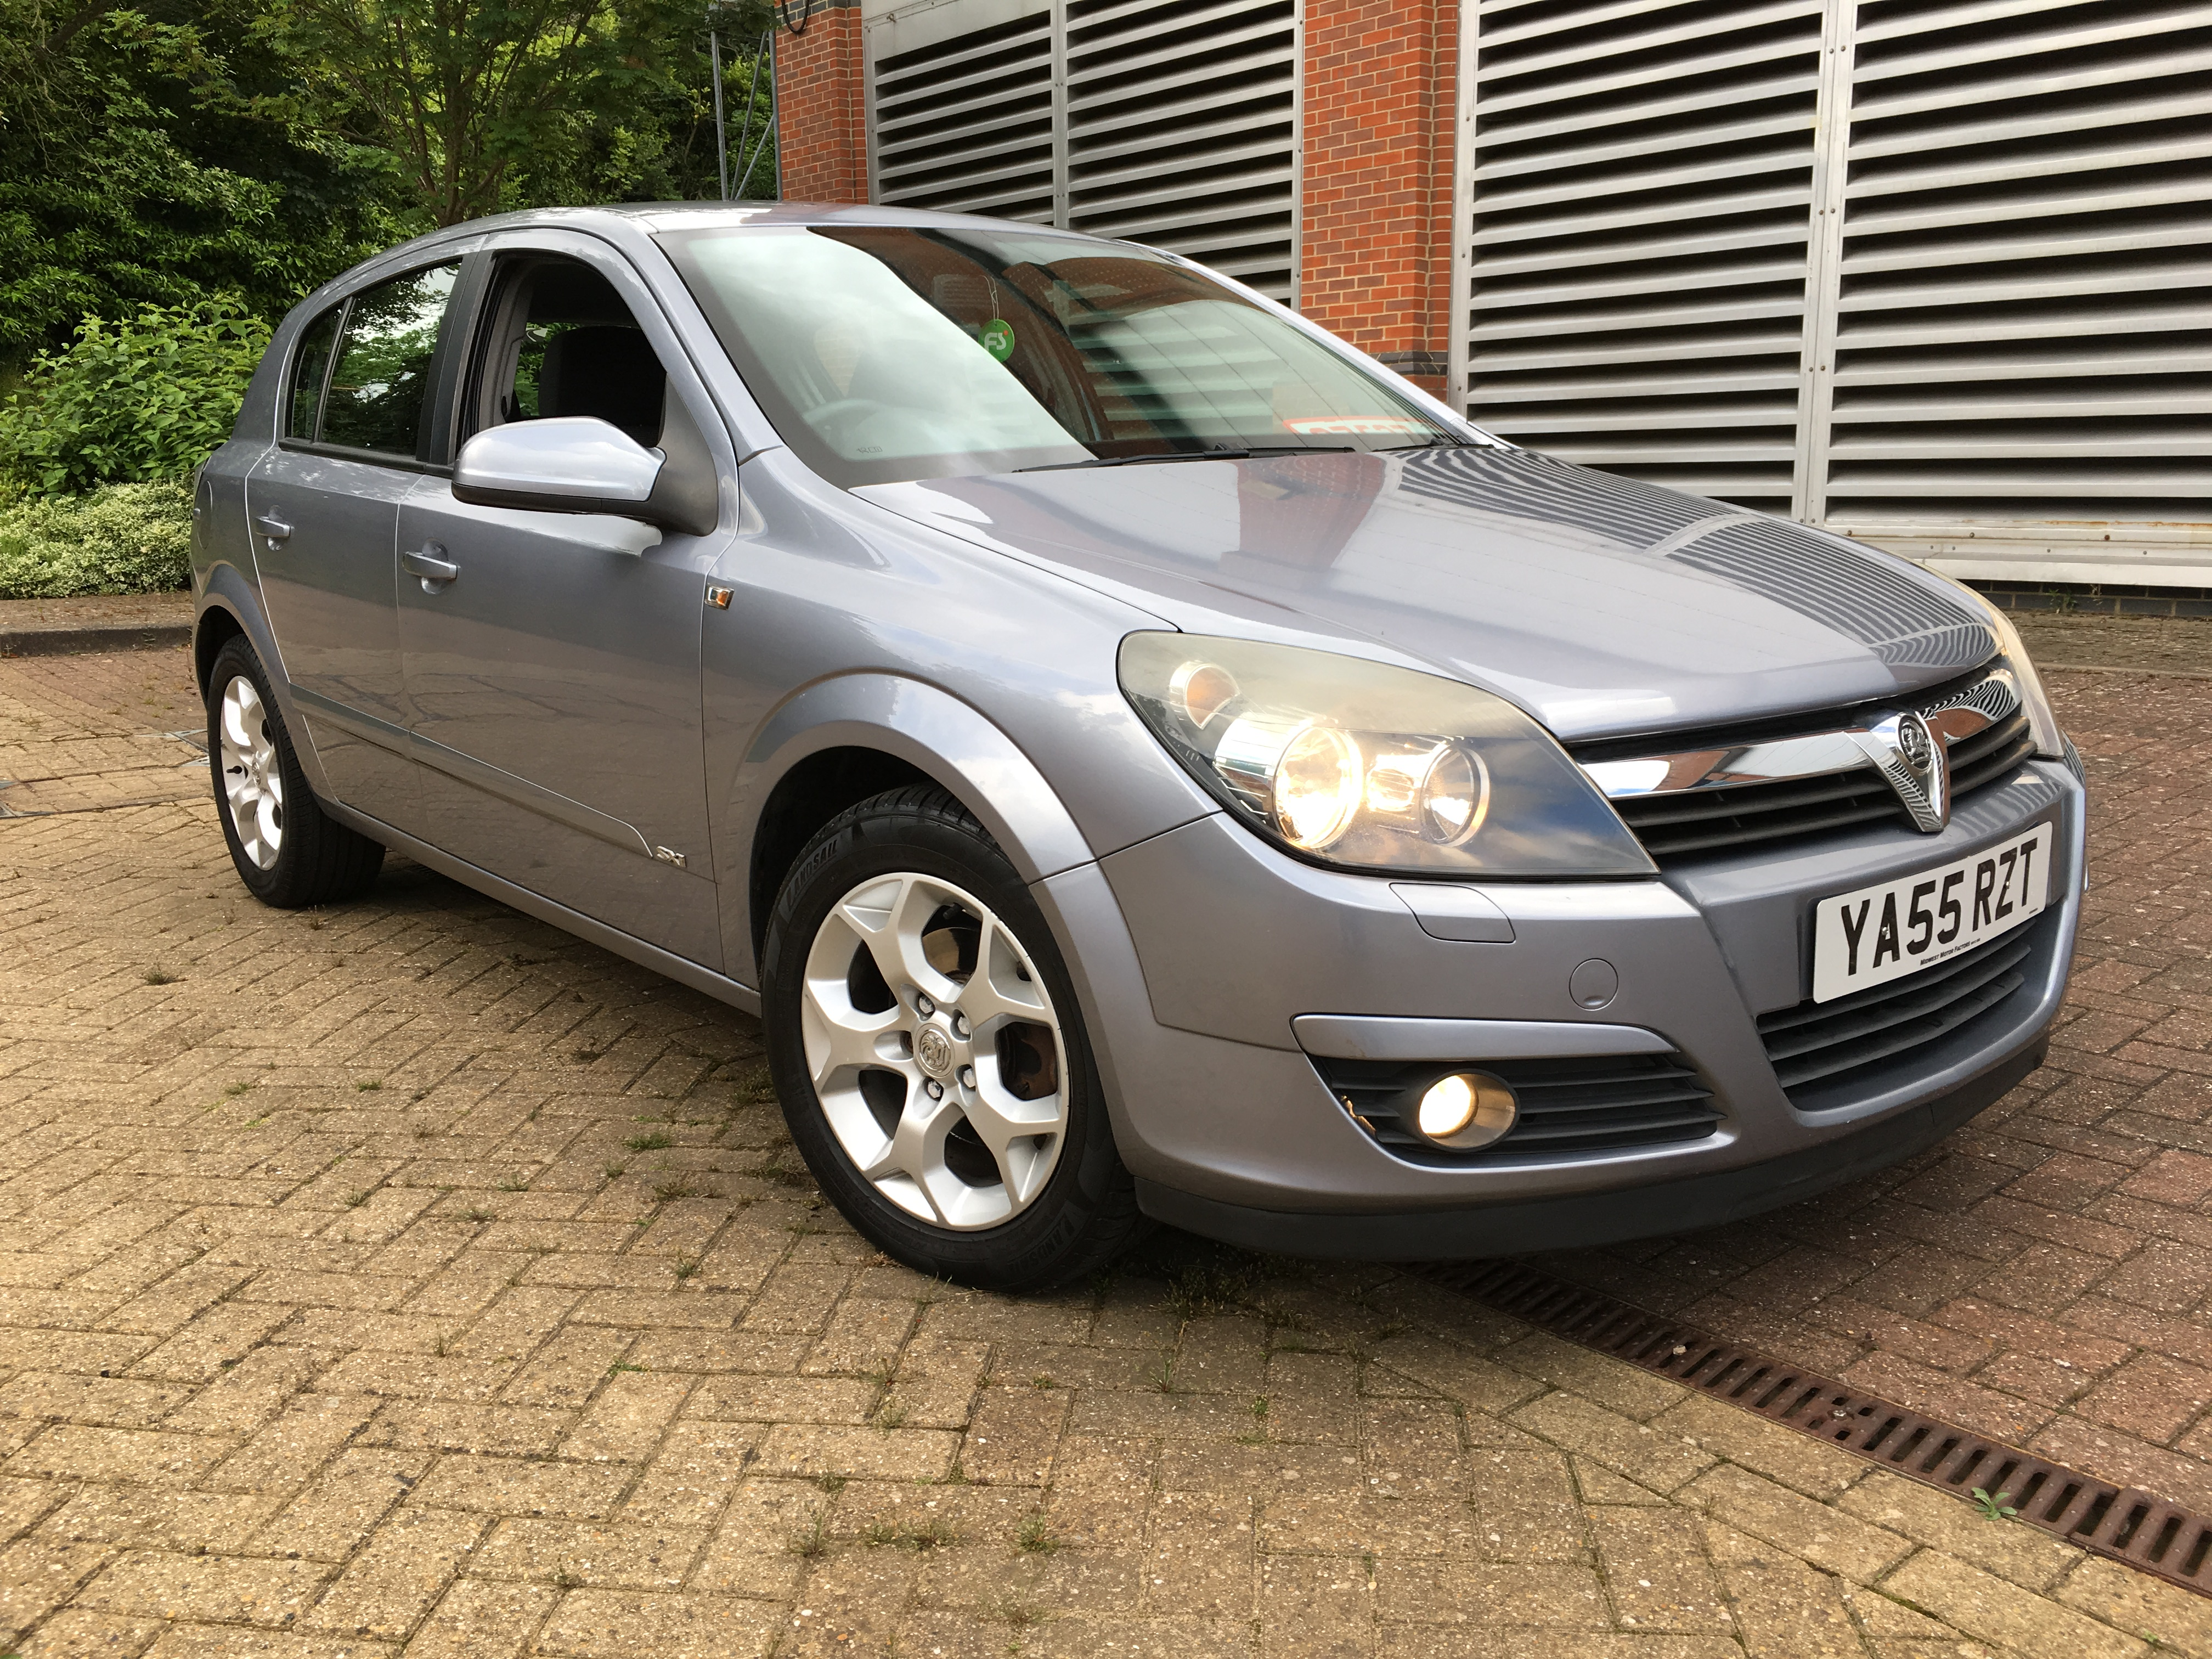 Astra. Sold by Shields Motor Company